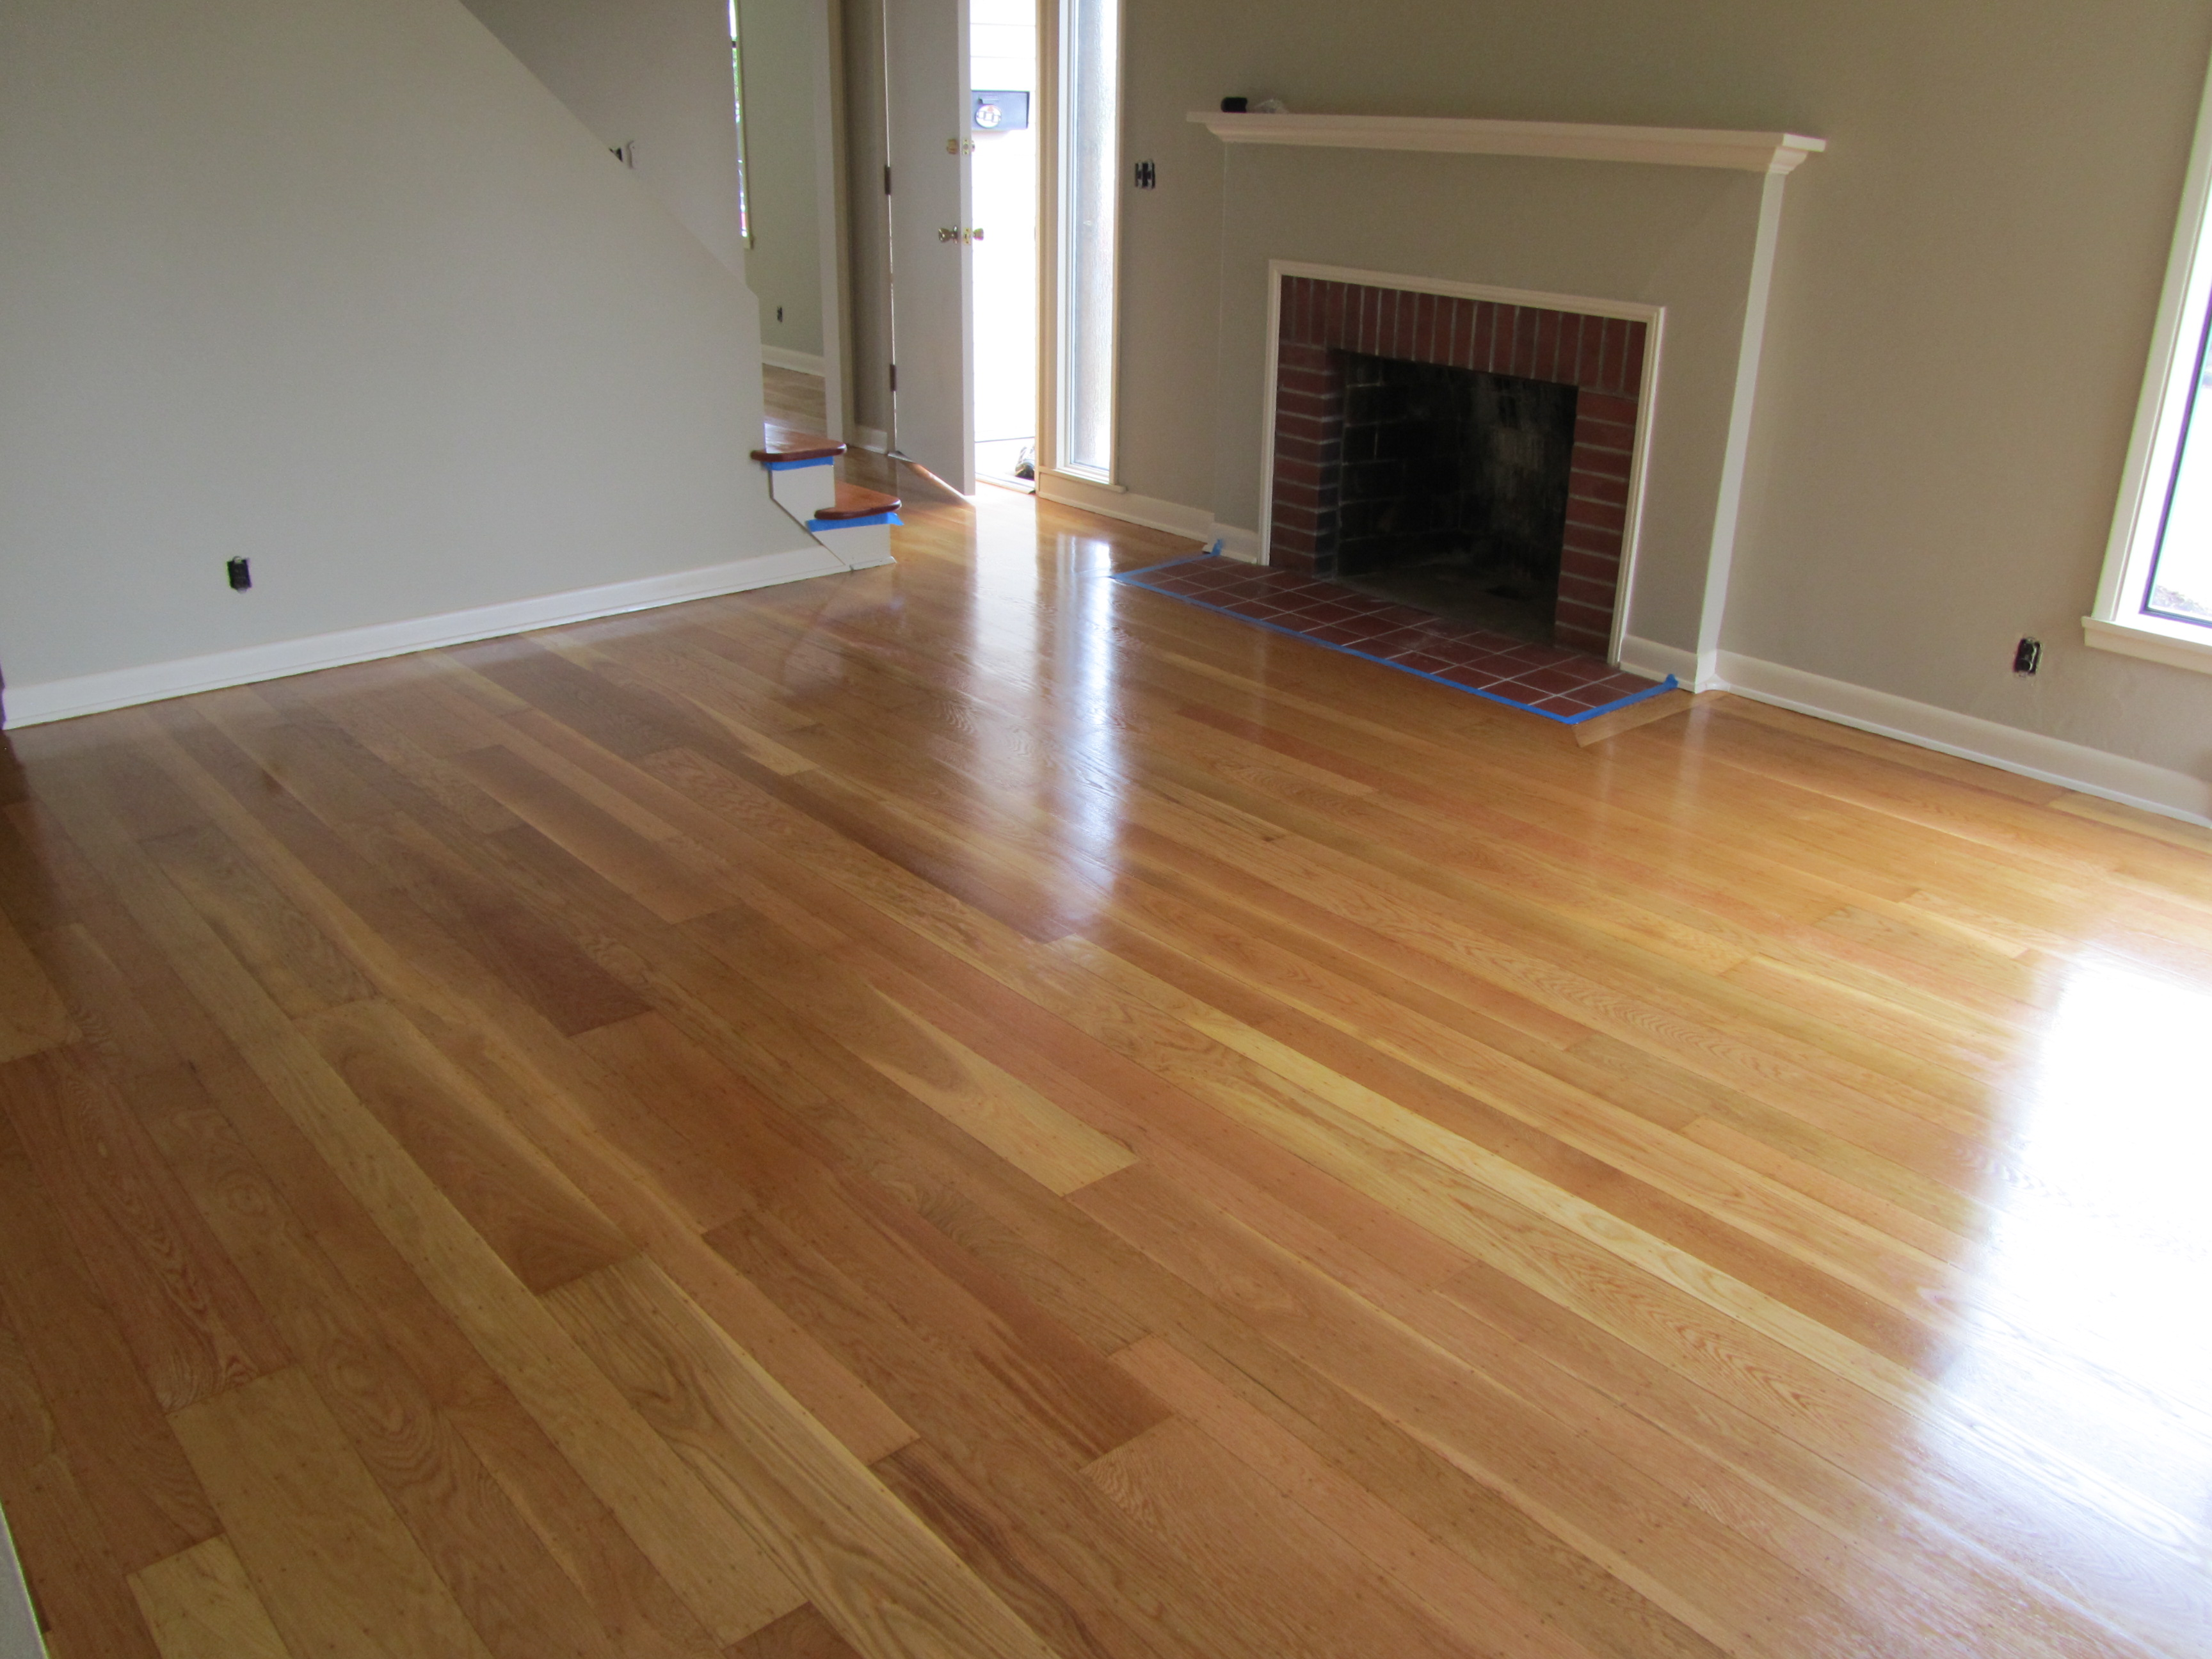 Maple leaf refinish seattle general contractor and for Hardwood flooring nearby